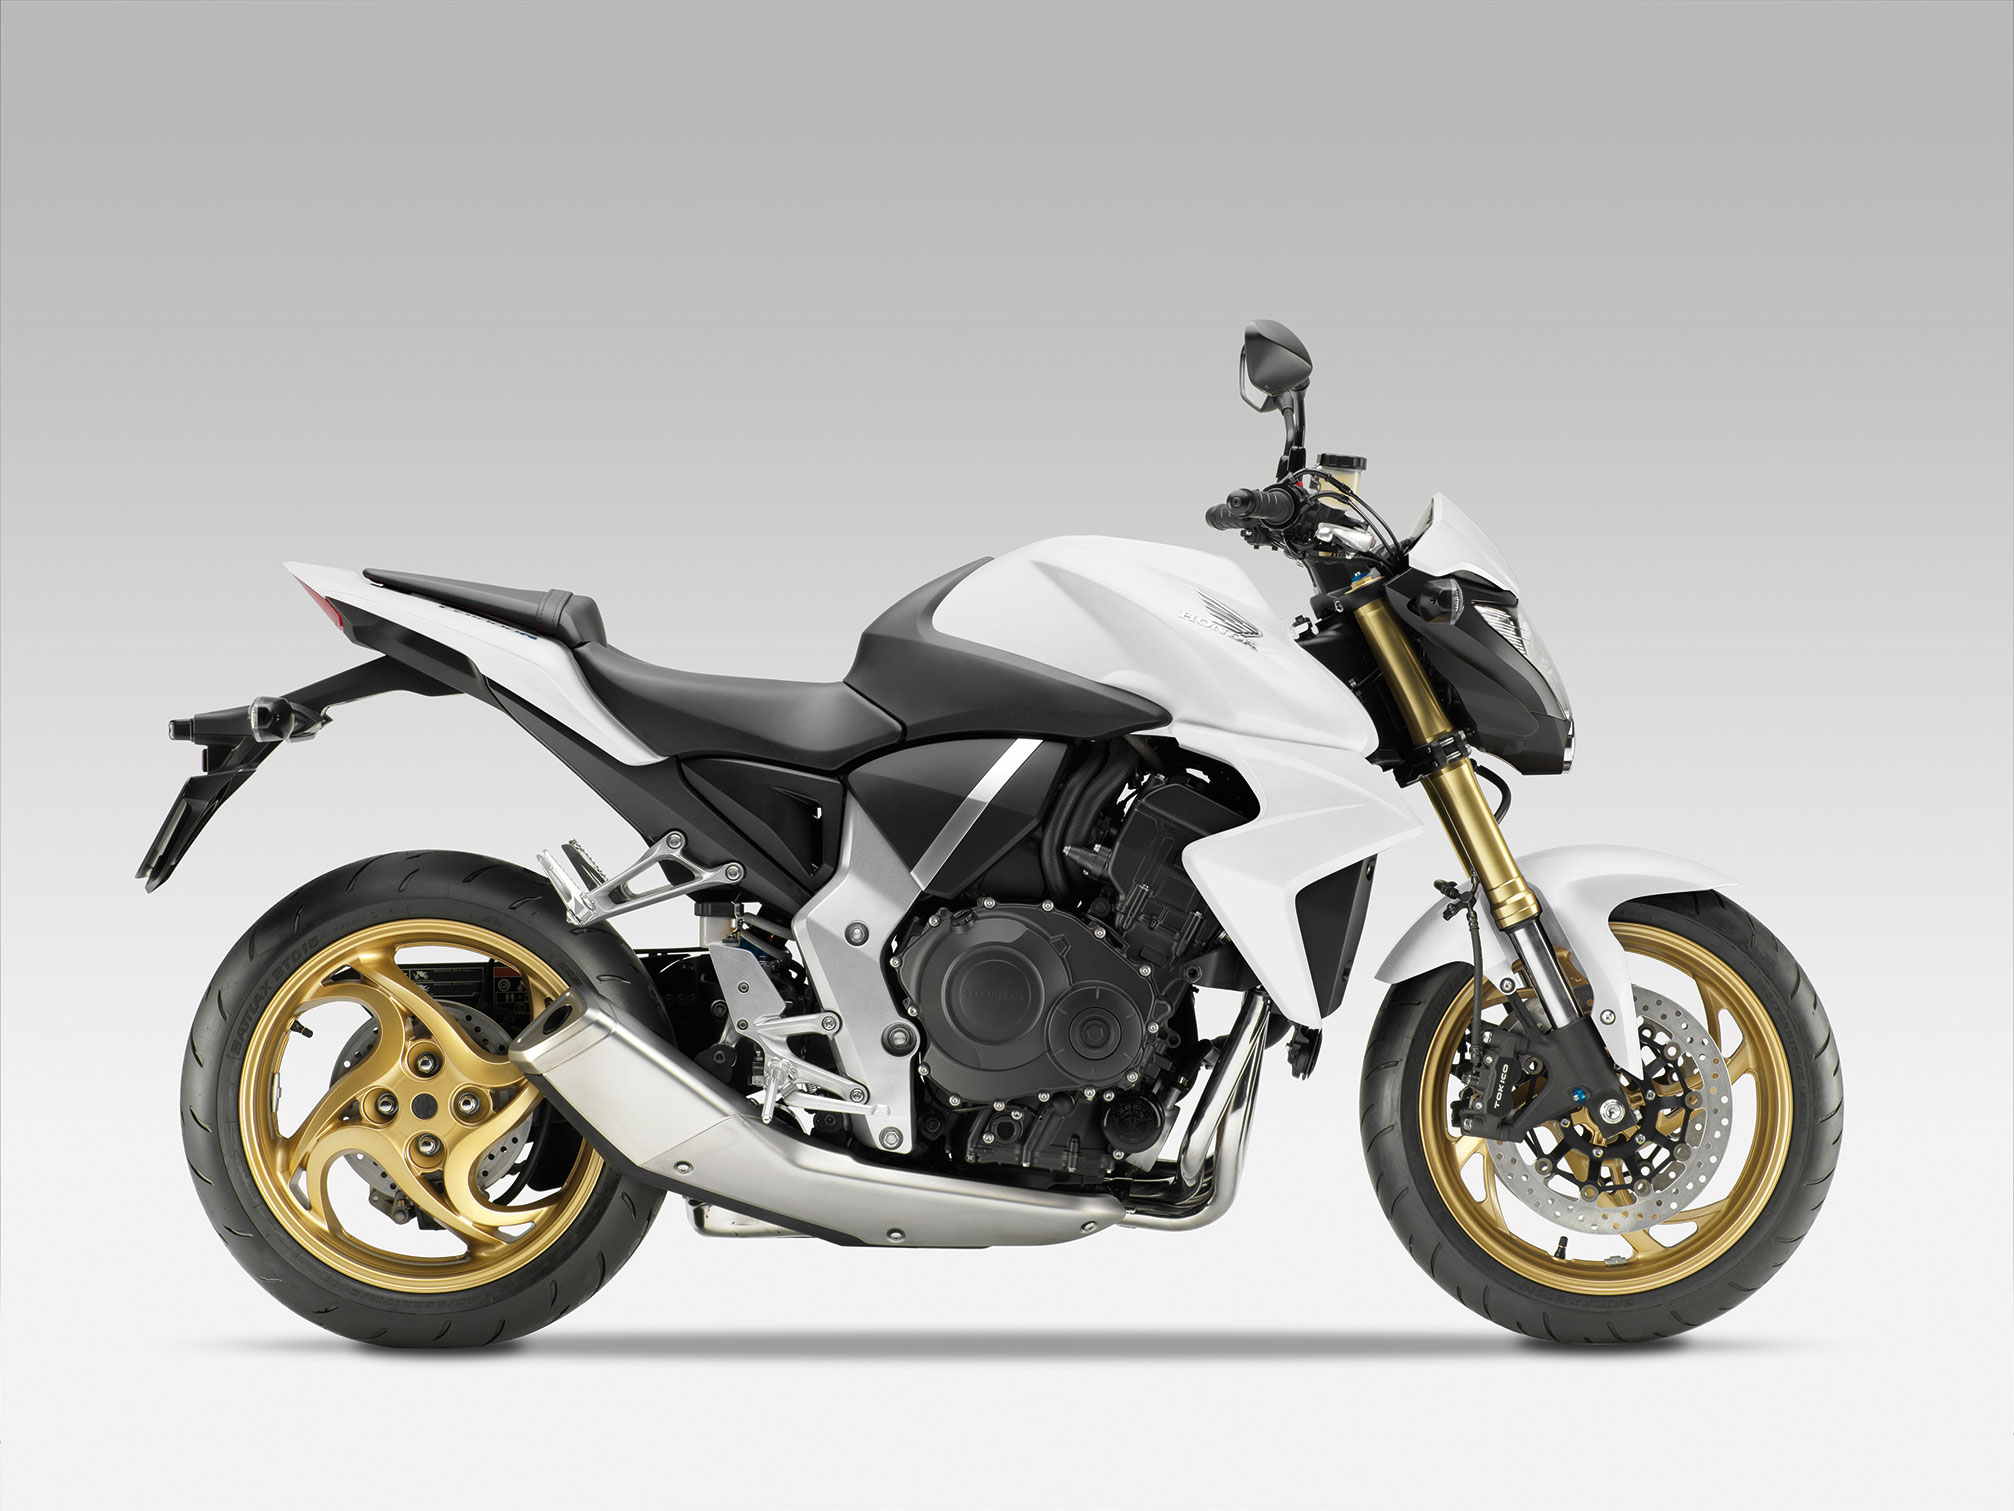 2014 Honda Cb1000ra Abs Review